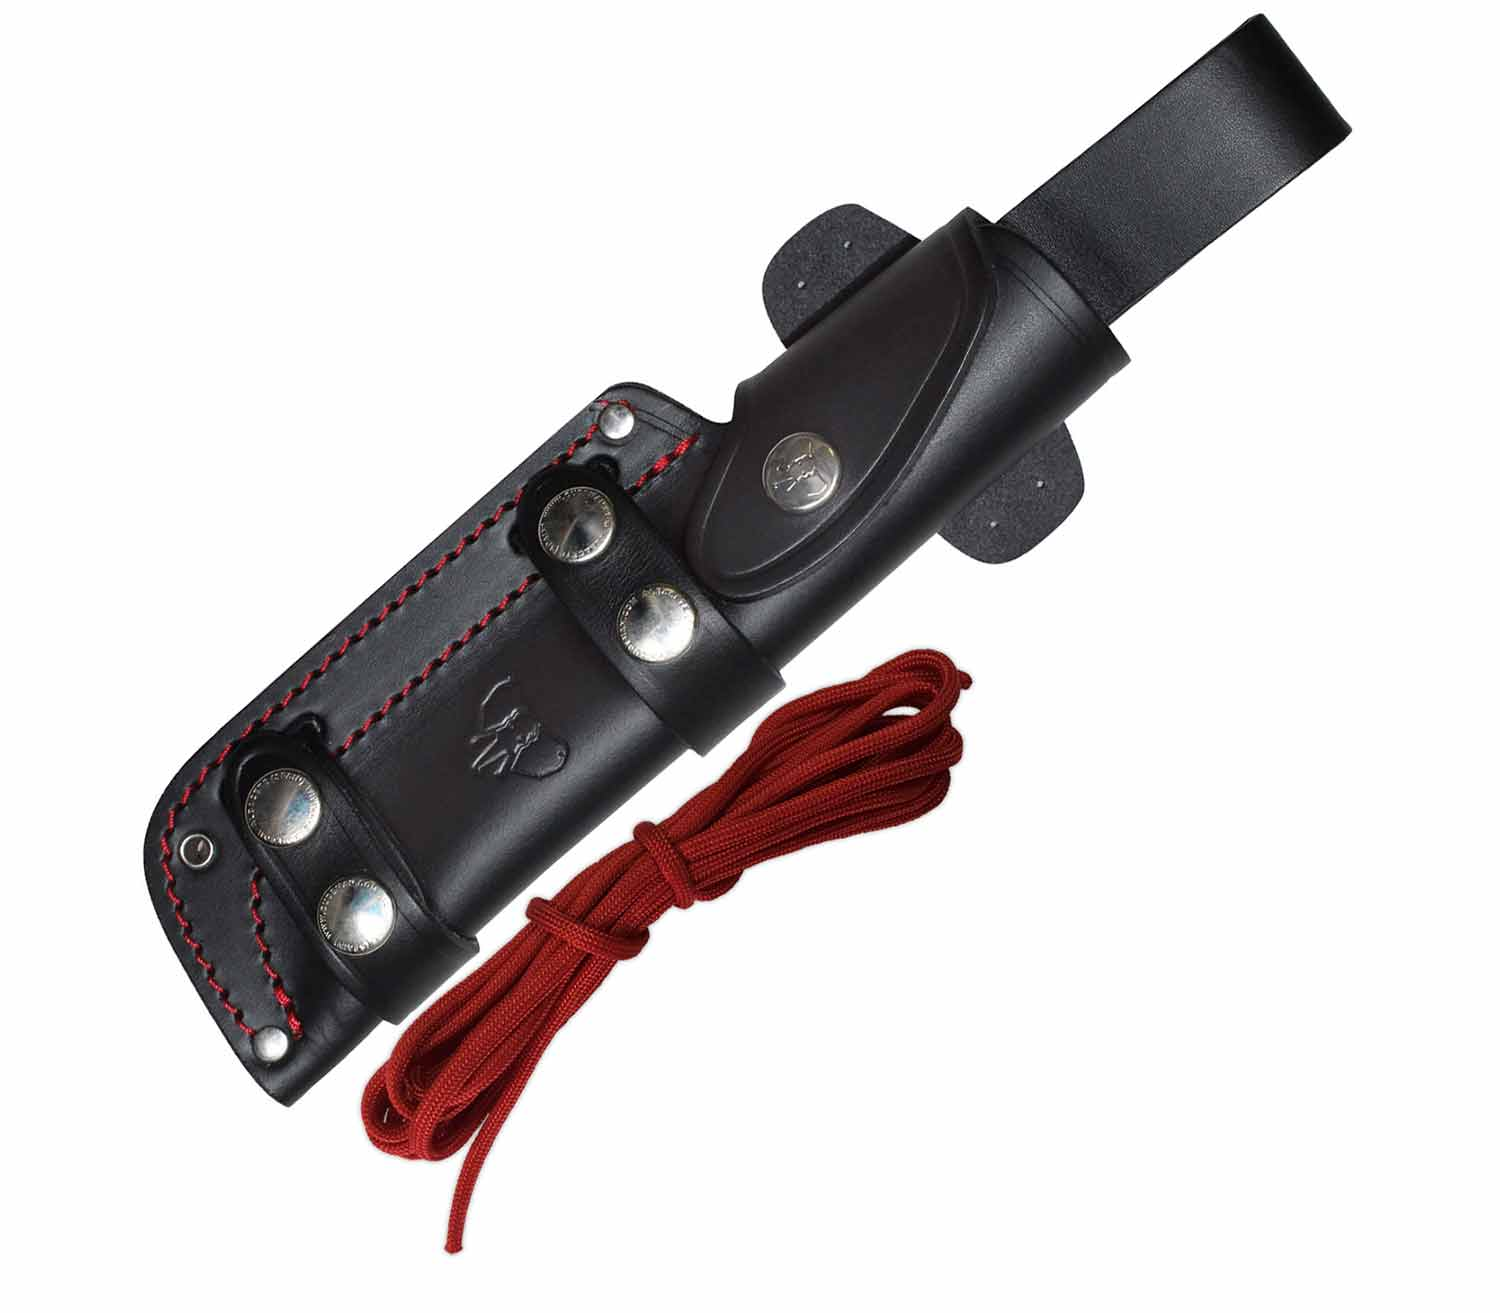 Cuchillo Cudeman JJSK2 kit sencillo negro